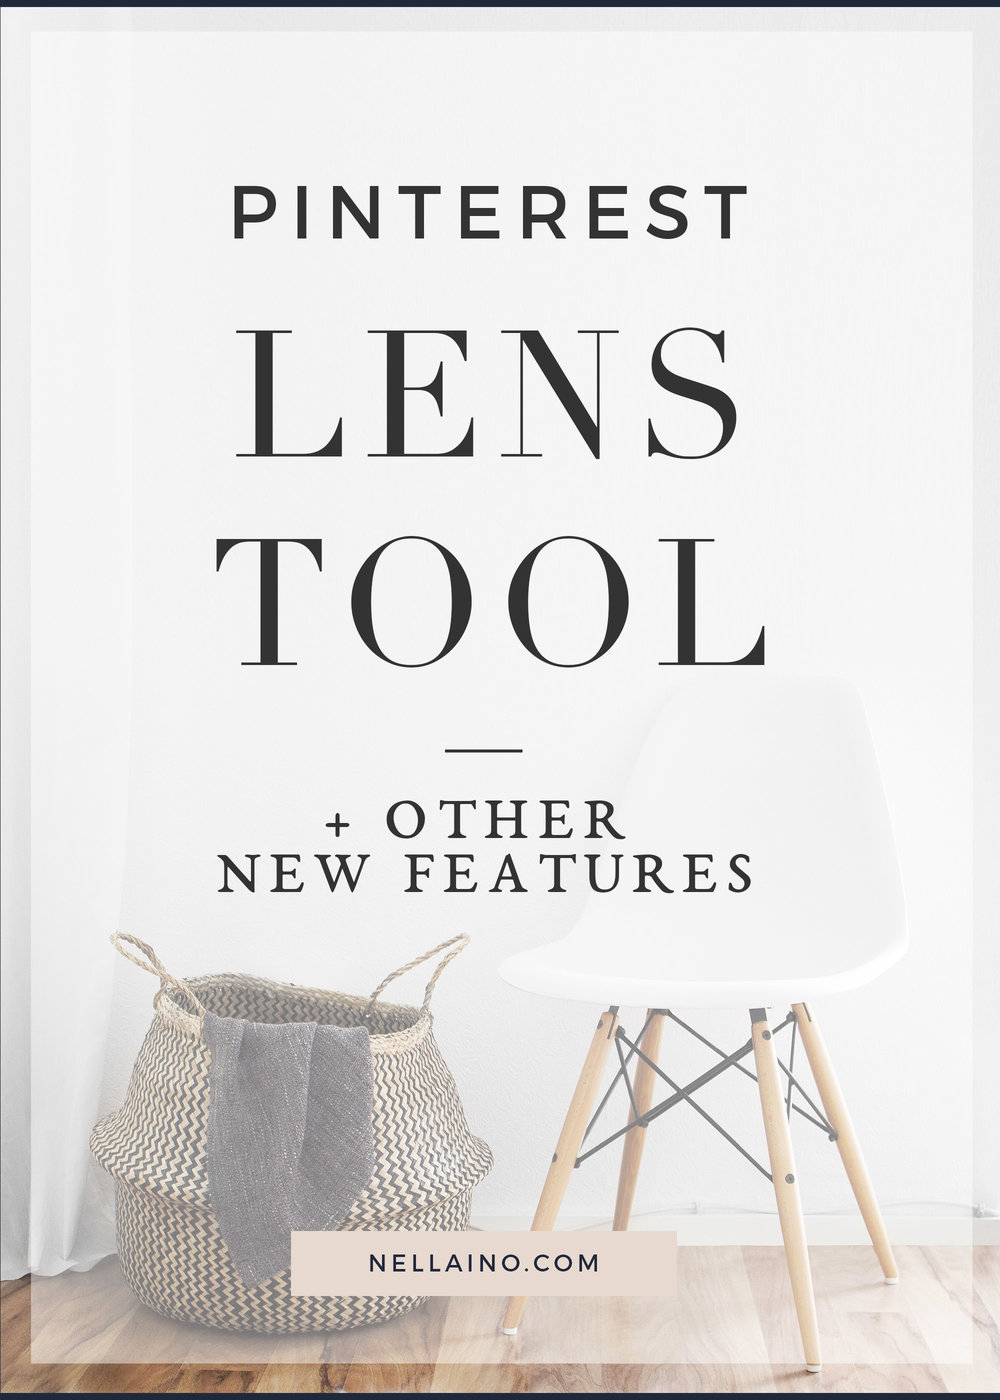 Pinterest has launched a new discovery tool for visual search. Now you can search new ideas based on visuals. Visit: nellaino.com/blog for more info!